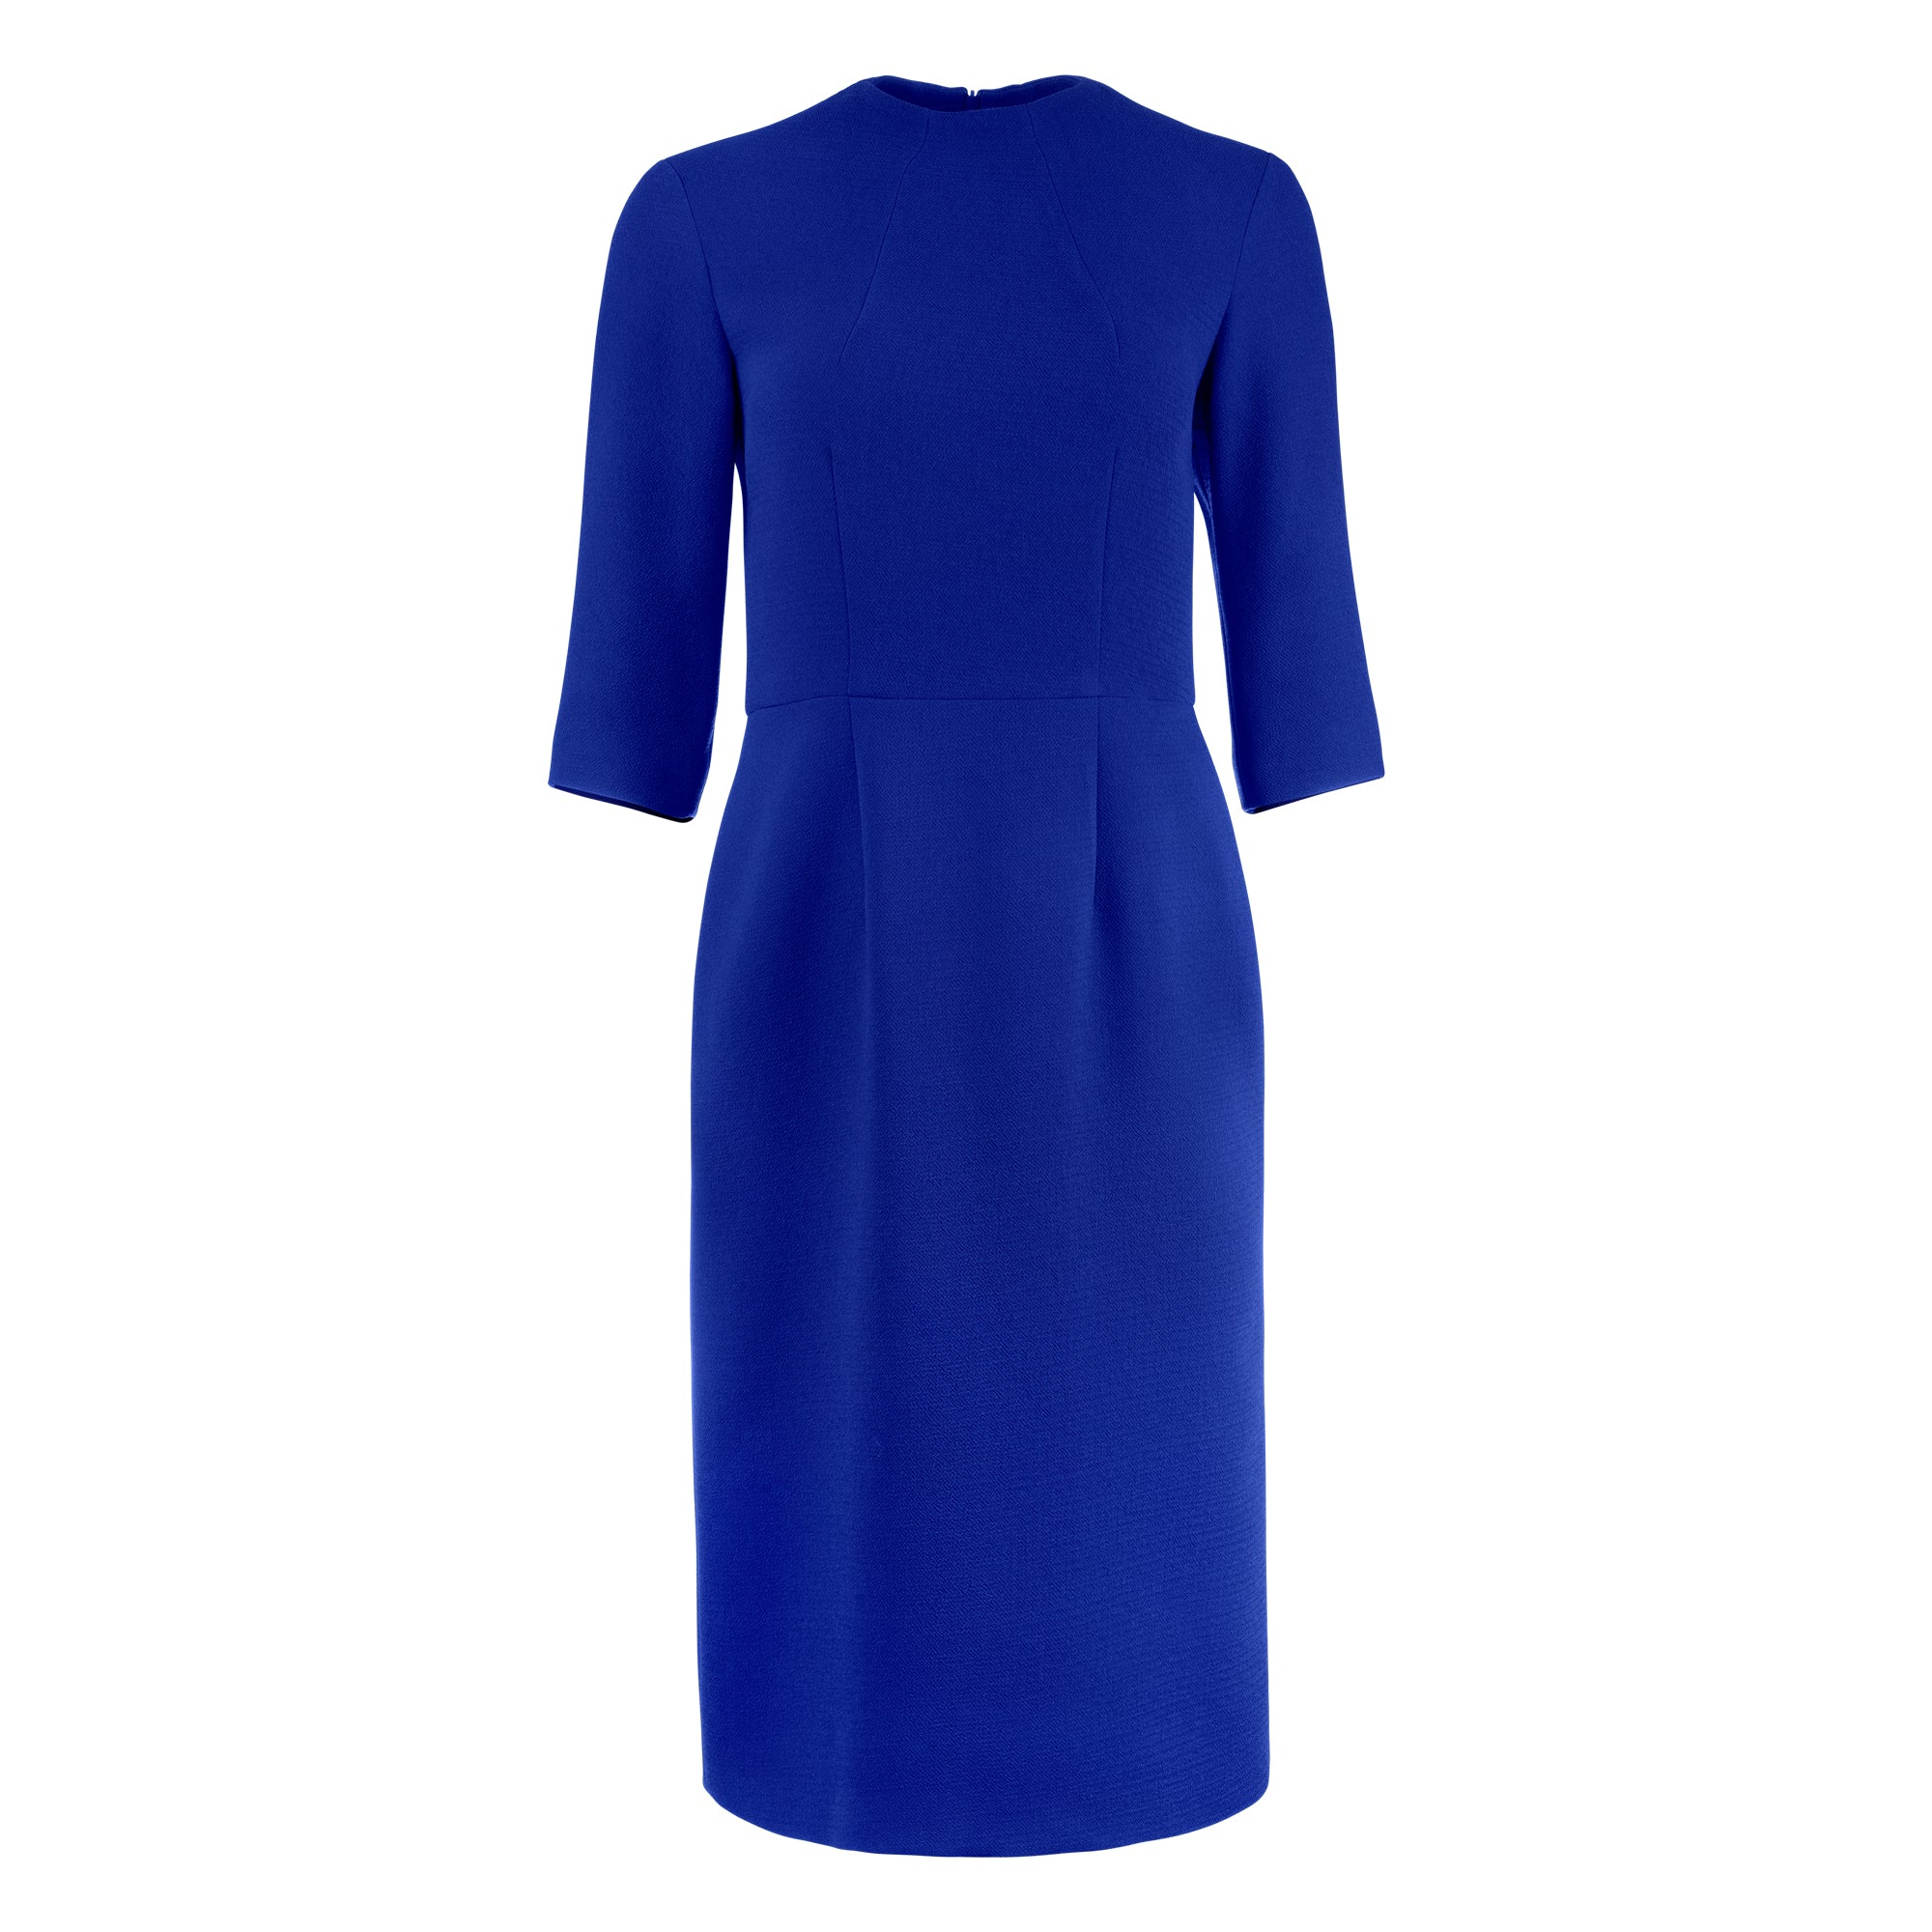 The Jackie O Dress